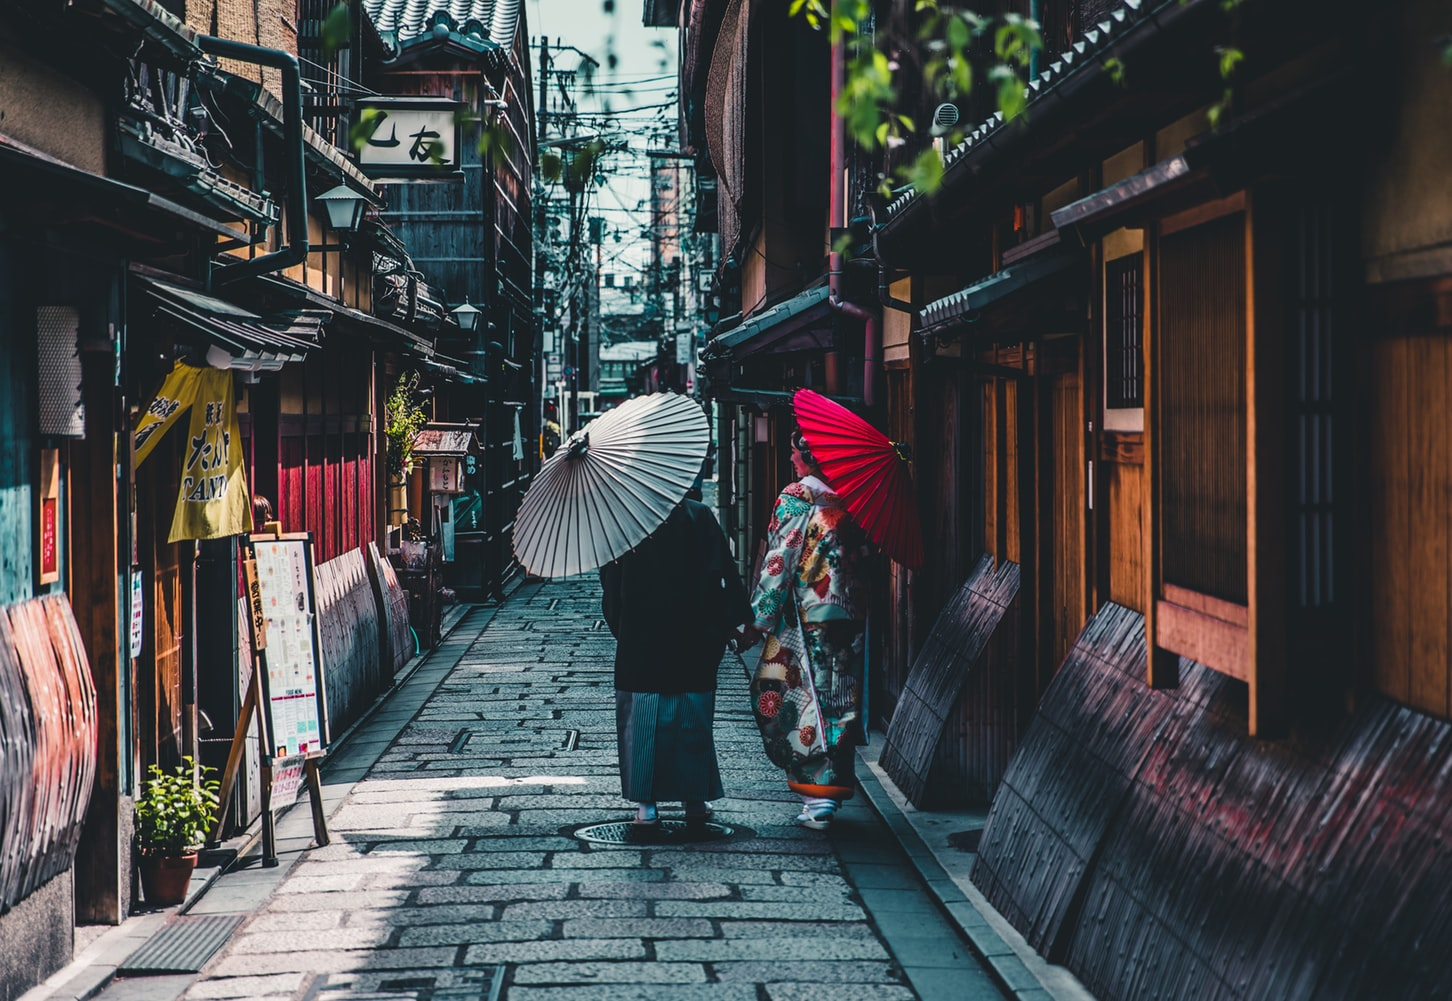 Geishas with parasols walking down Japanese laneway